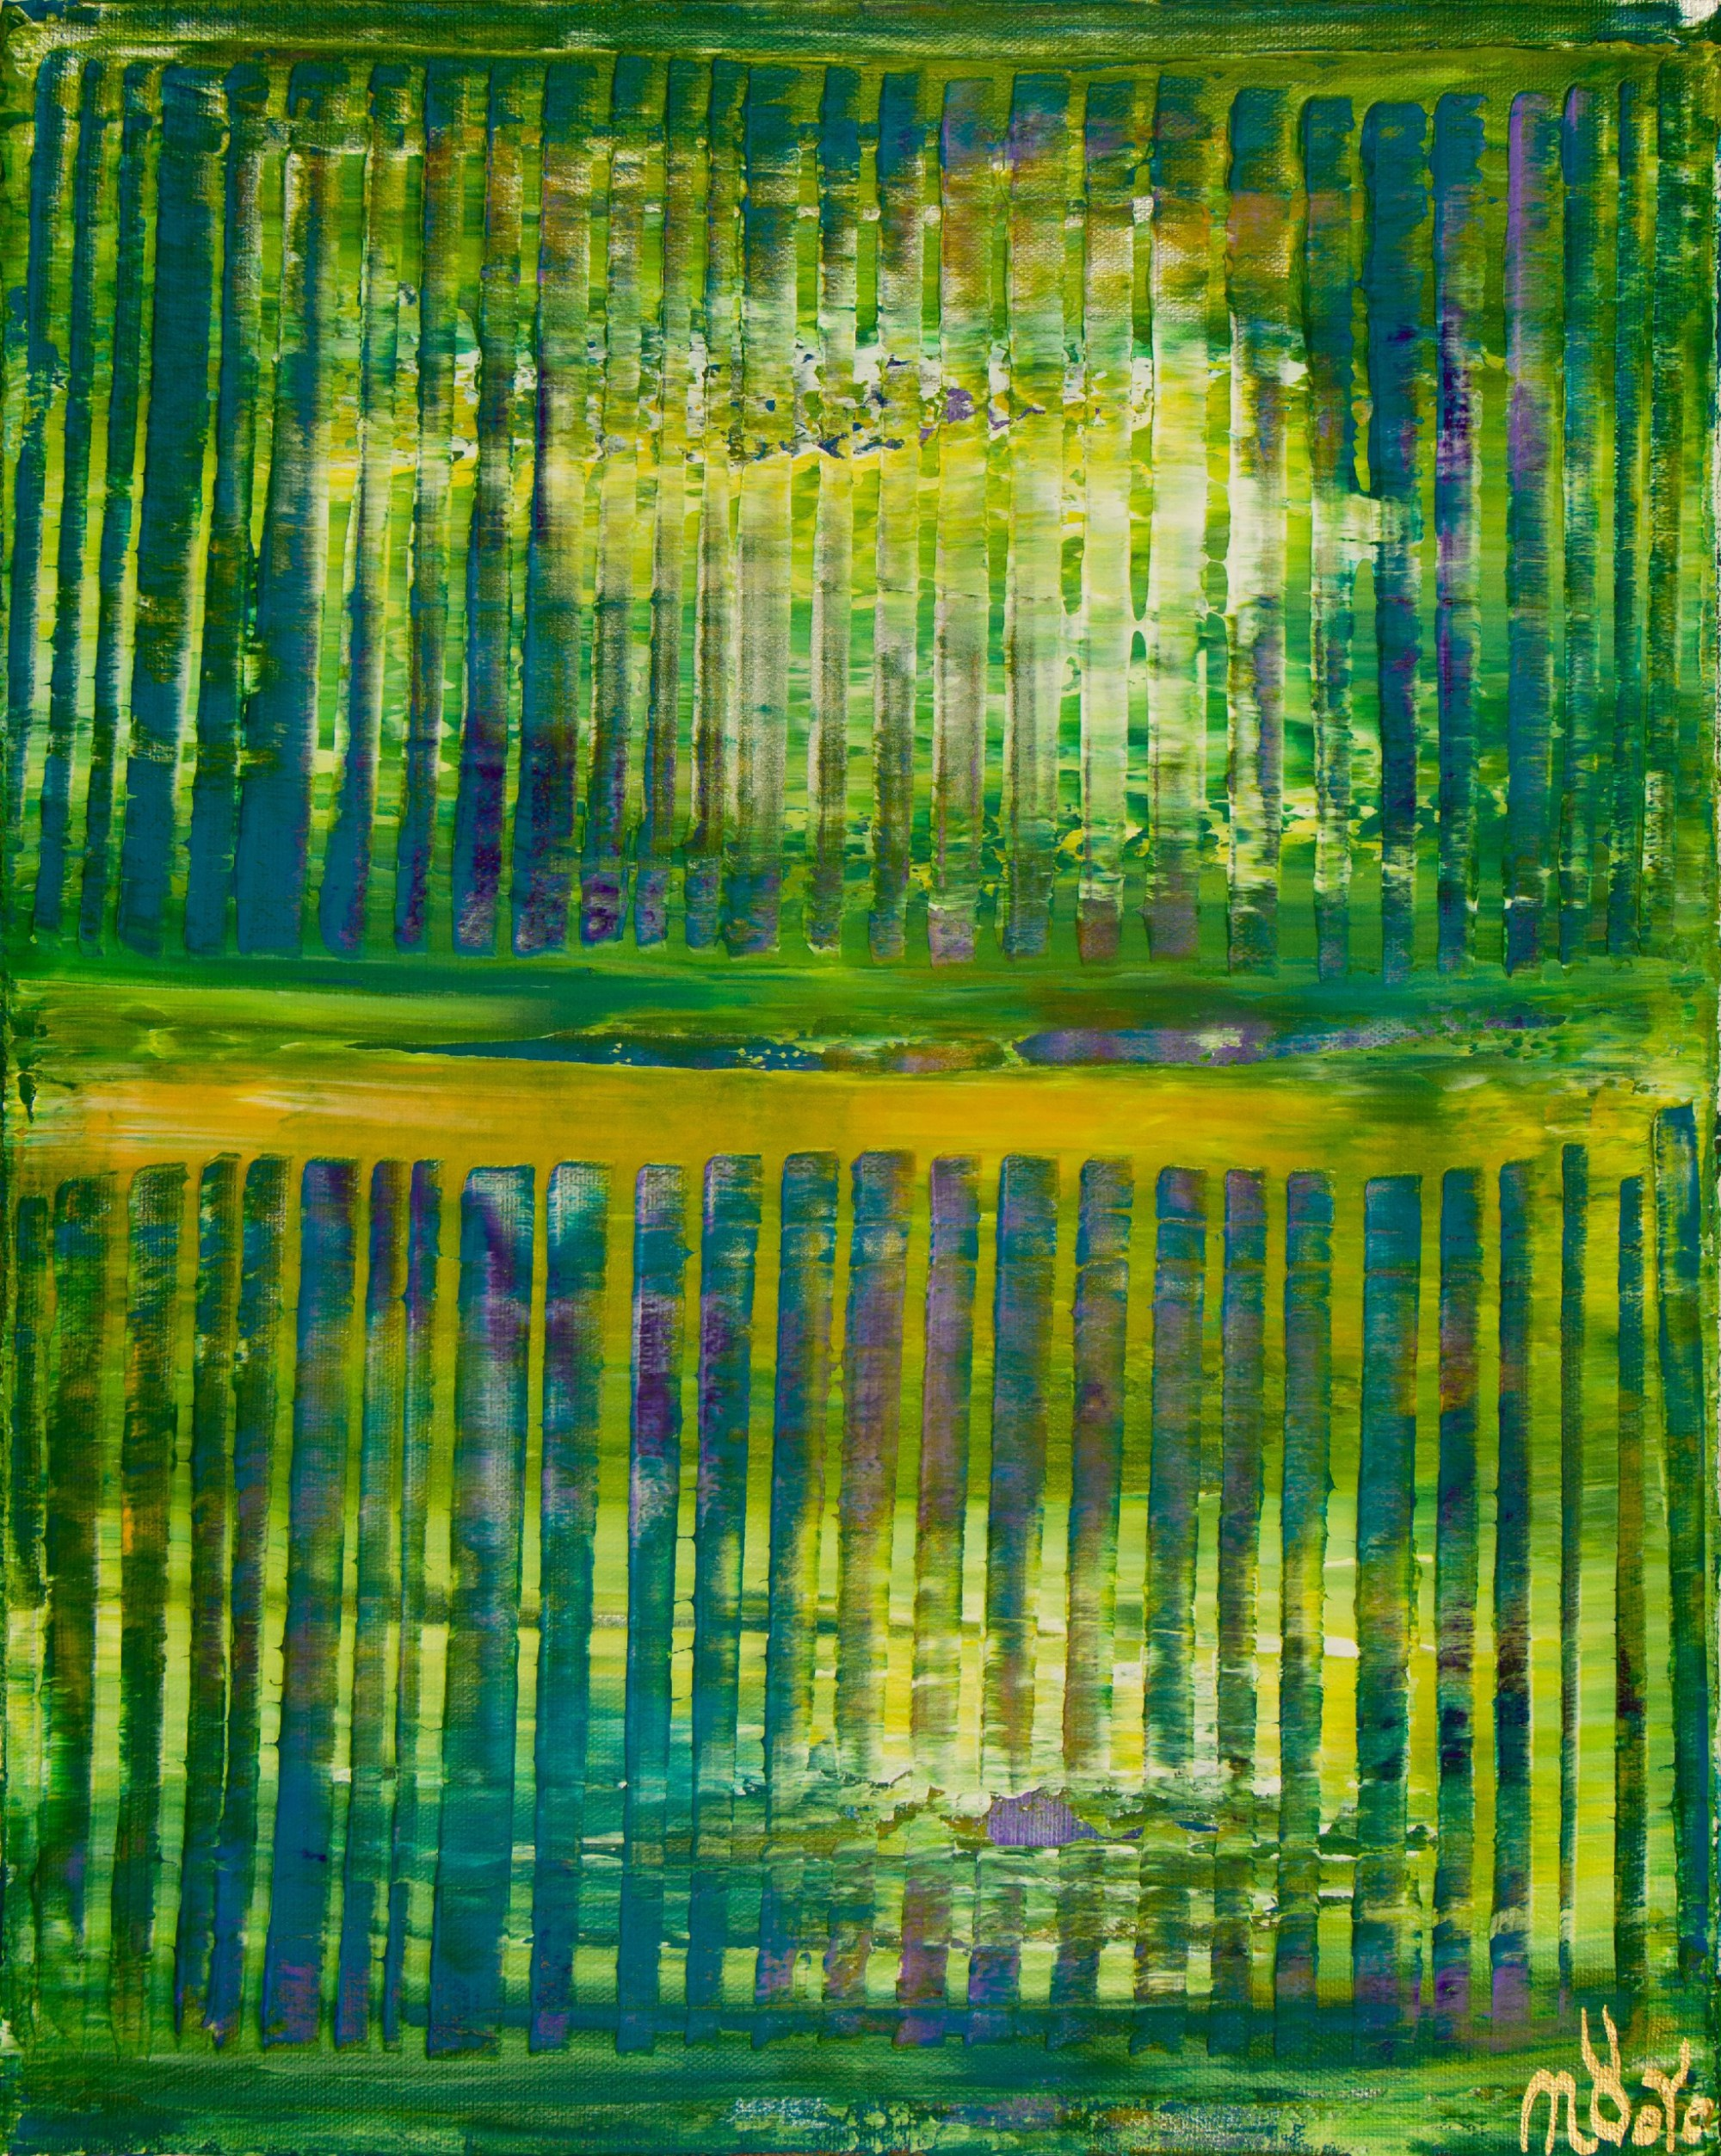 Forest Mirrors and Light (2020) by Nestor Toro